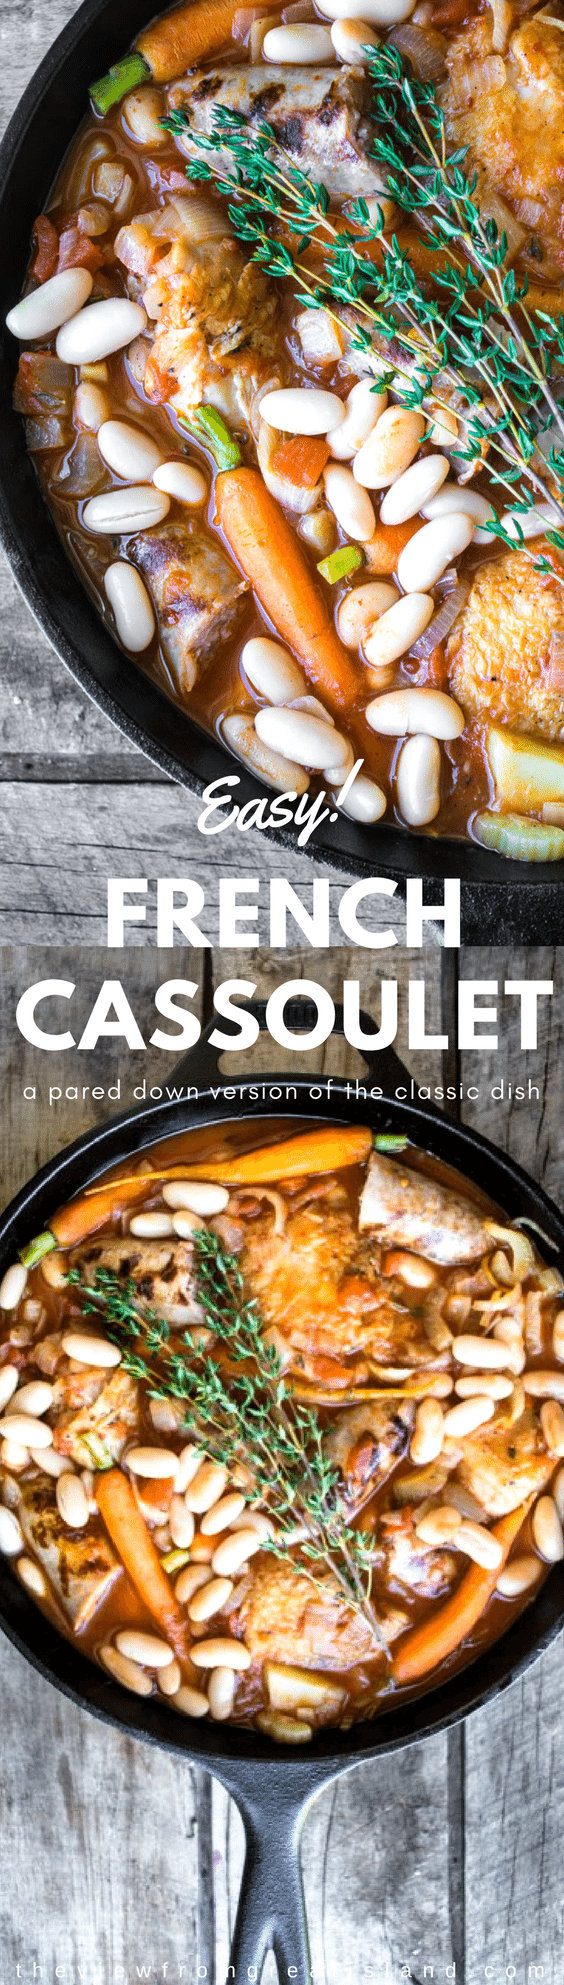 My Easy Cassoulet is a pared down version of the classic French dish and it's perfect for laid back entertaining or a romantic dinner for two! #dinner #french #skilletdinner #onepotdinner #romantic #chicken #beans #sausage #glutenfree